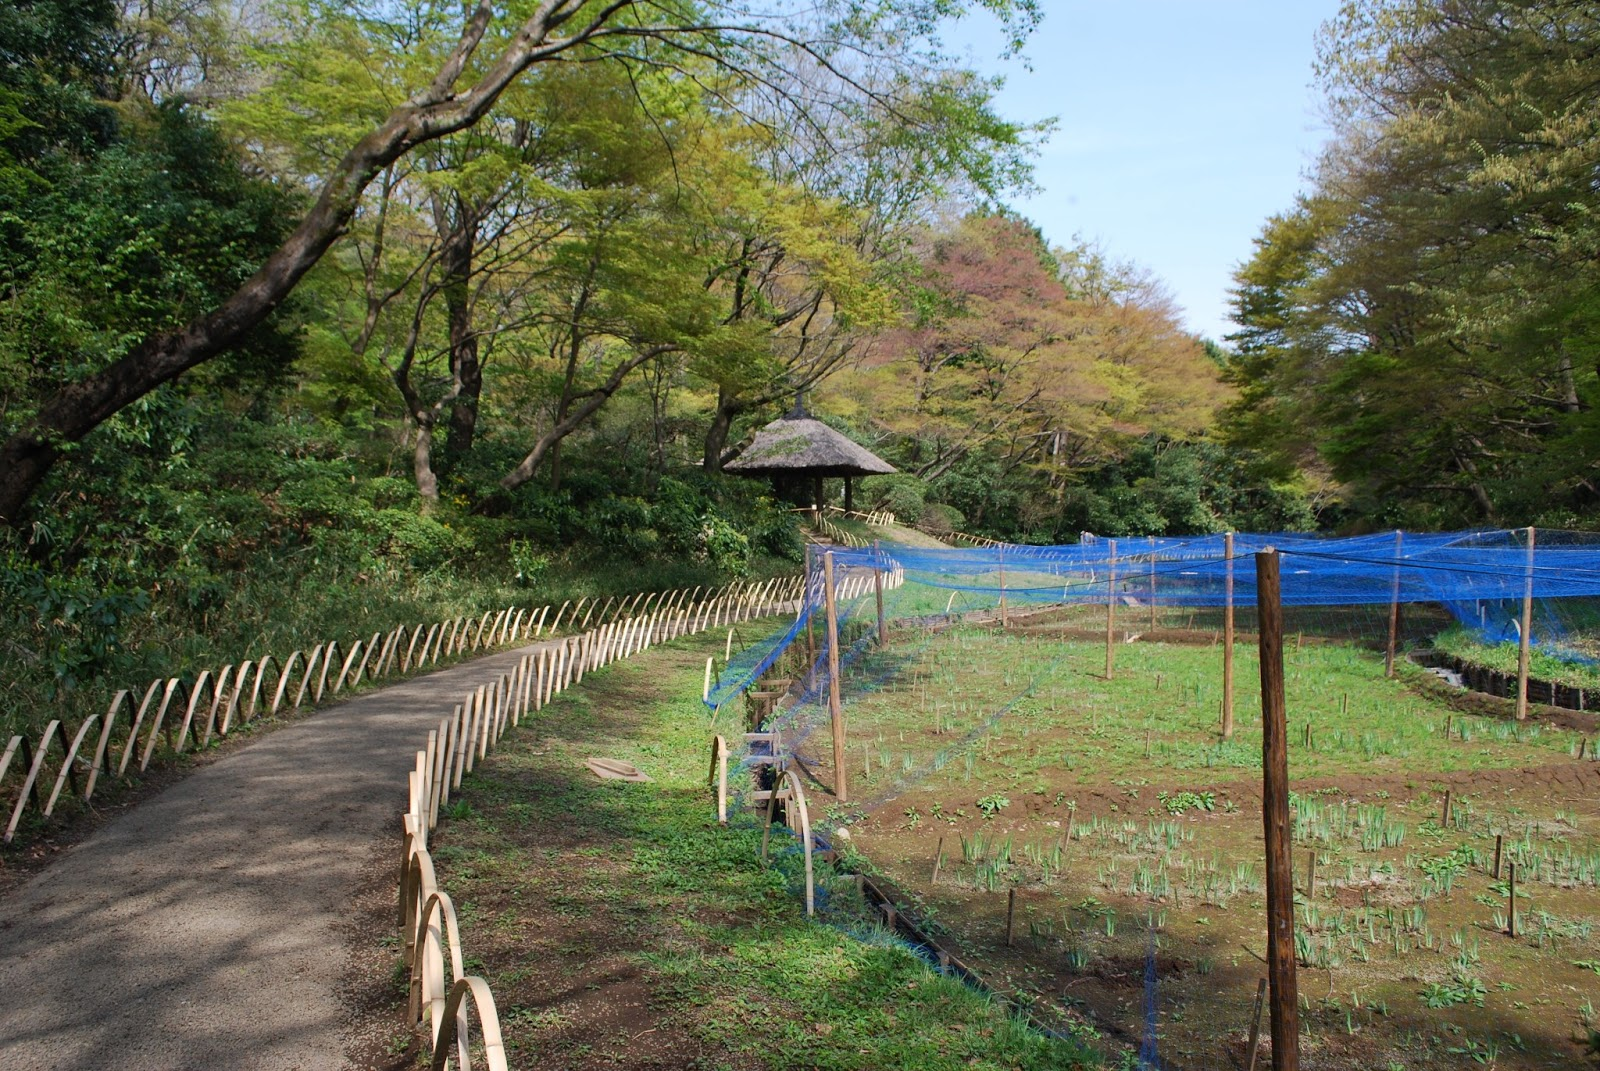 Meiji Jingu forest and imperial garden